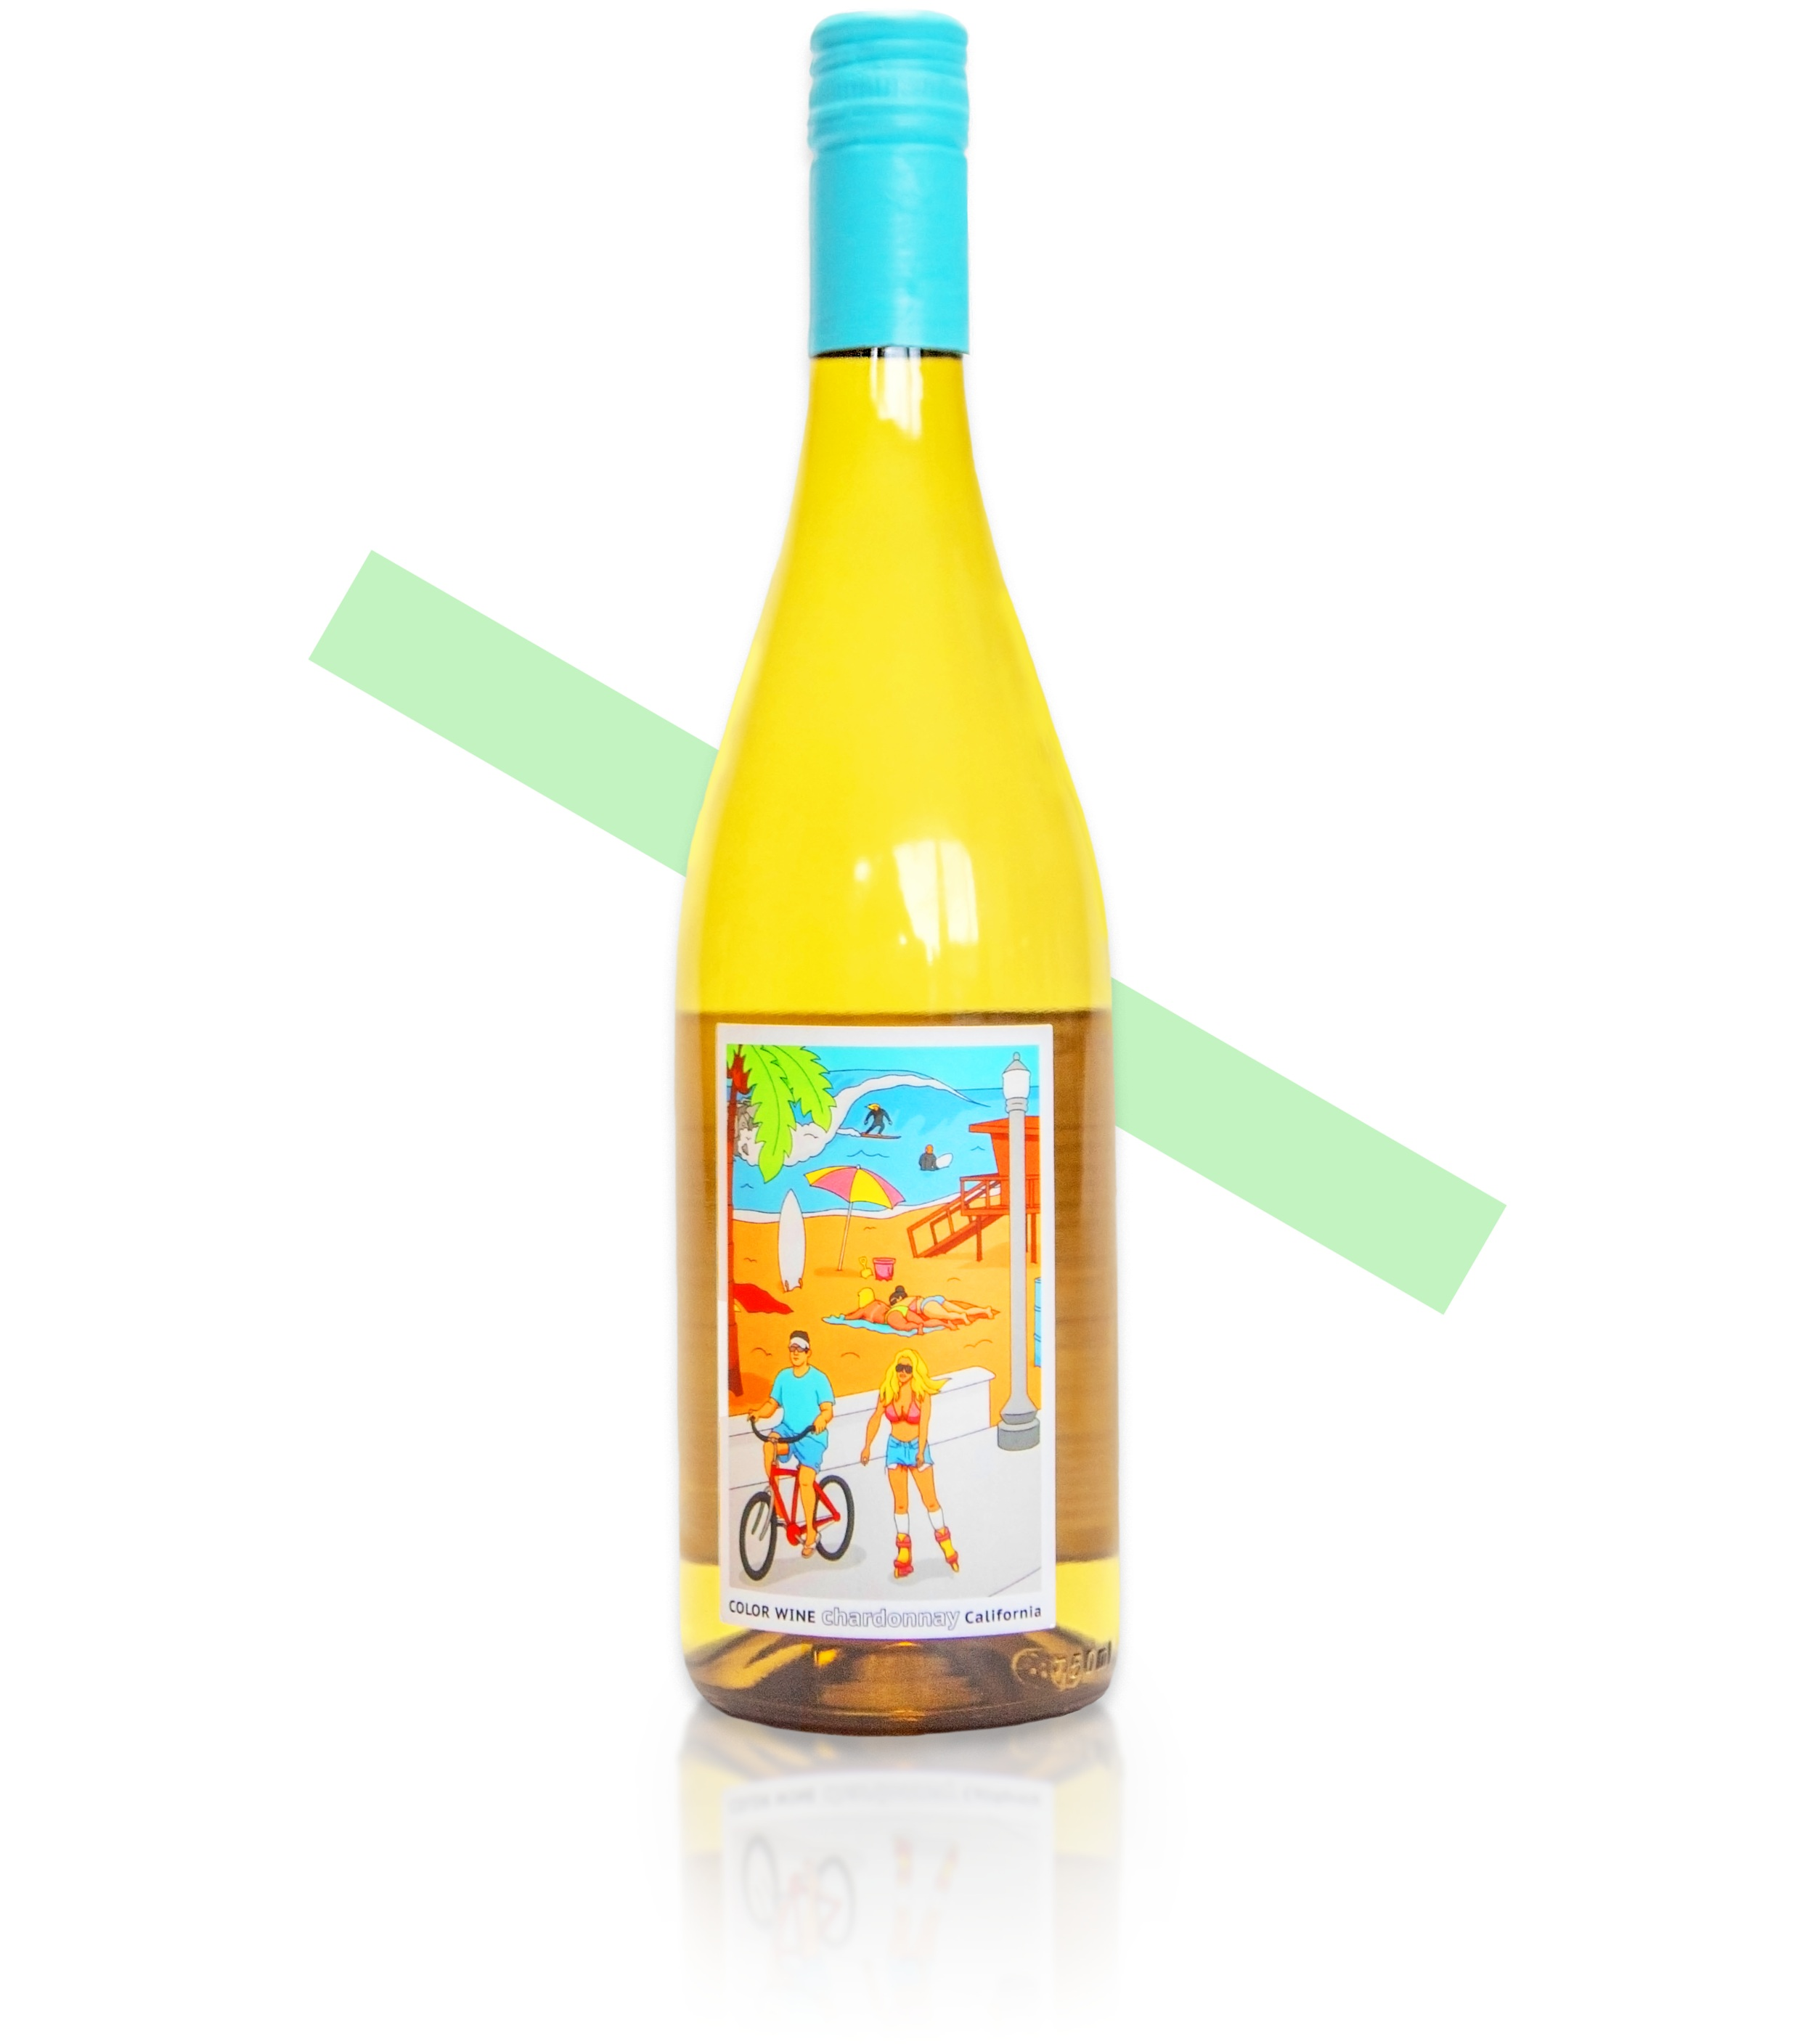 $15 chardonnay - Best Enjoyed:Chilled down and served on a boat, at the beach, or by the pool. The Chardonnay is all-time.Our Award-Winning ChardonnayBronze Medal winner at 2017 OC Fair Blind-Taste CompetitionSilver Medal winner at 2018 OC Fair Blind-Taste Competition